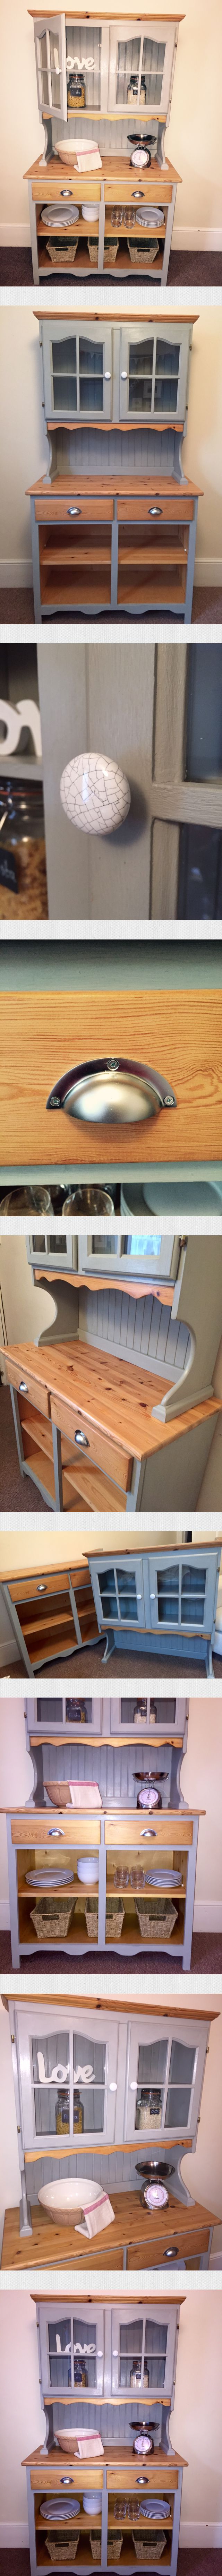 Cute country style pine Welsh dresser. lovingly upcycled using a beautiful grey (shutter) chalk paint, sanded then waxed twice to give a durable finish. I've added new stainless steel cup handles to the draws and ceramic crackle glaze knobs to the doors. In addition to this I've removed the old doors to give a more up-to-date look. Adding baskets to the open cabinet to keep items neat would also create a shabby chic feel if desired. My upcycled items are not new factory pieces and often have…